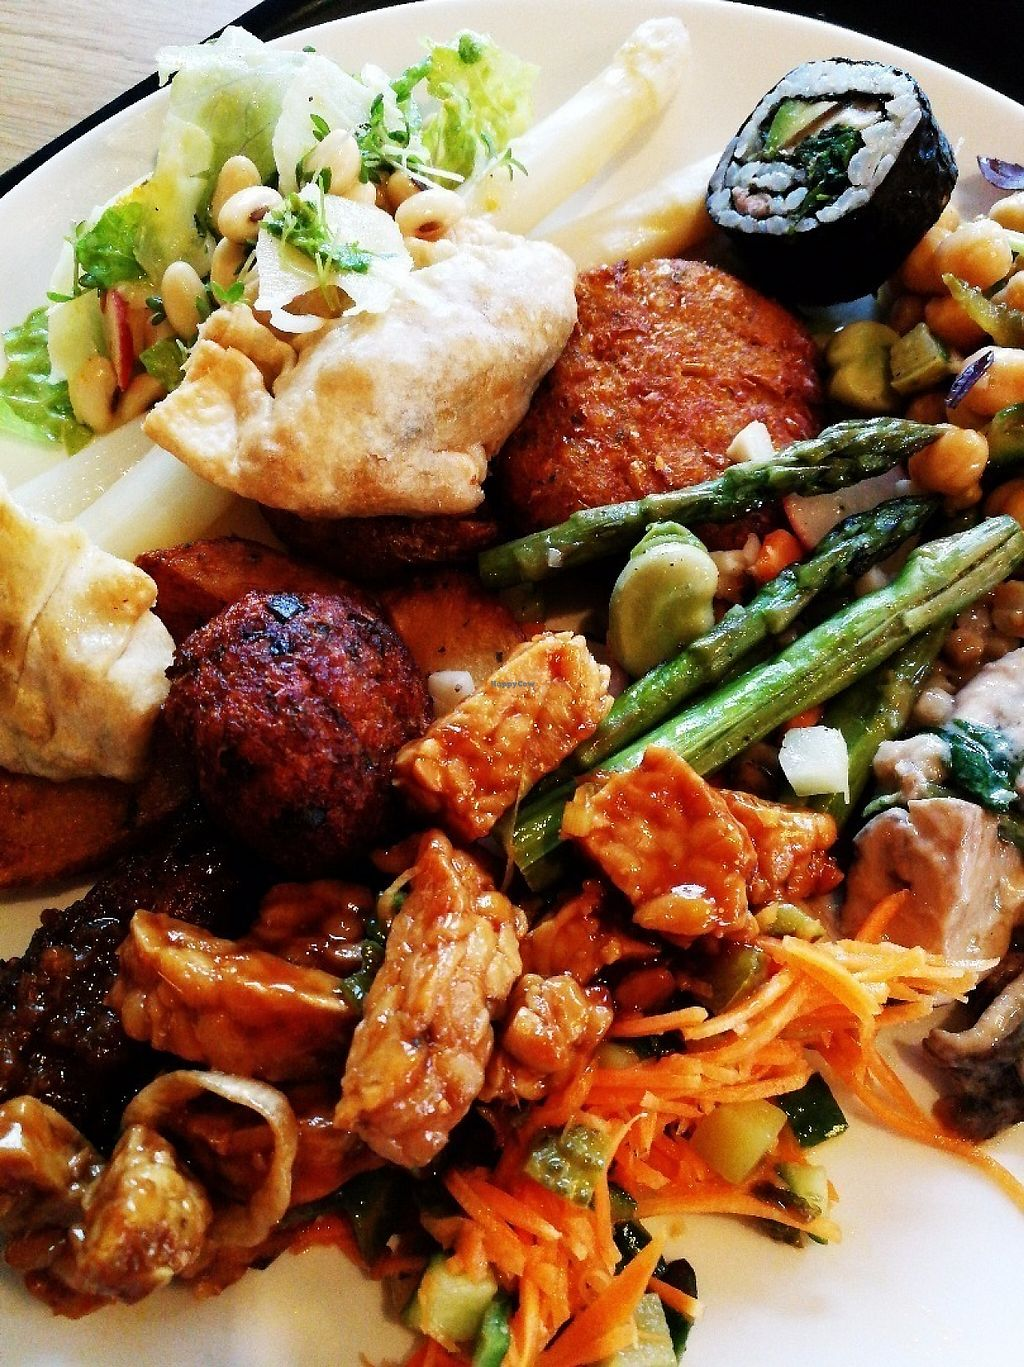 """Photo of Spirit  by <a href=""""/members/profile/Gudrun"""">Gudrun</a> <br/>This is how the plate of a person who can't decide looks like. Too many good vegan options! <br/> May 18, 2017  - <a href='/contact/abuse/image/82798/259989'>Report</a>"""